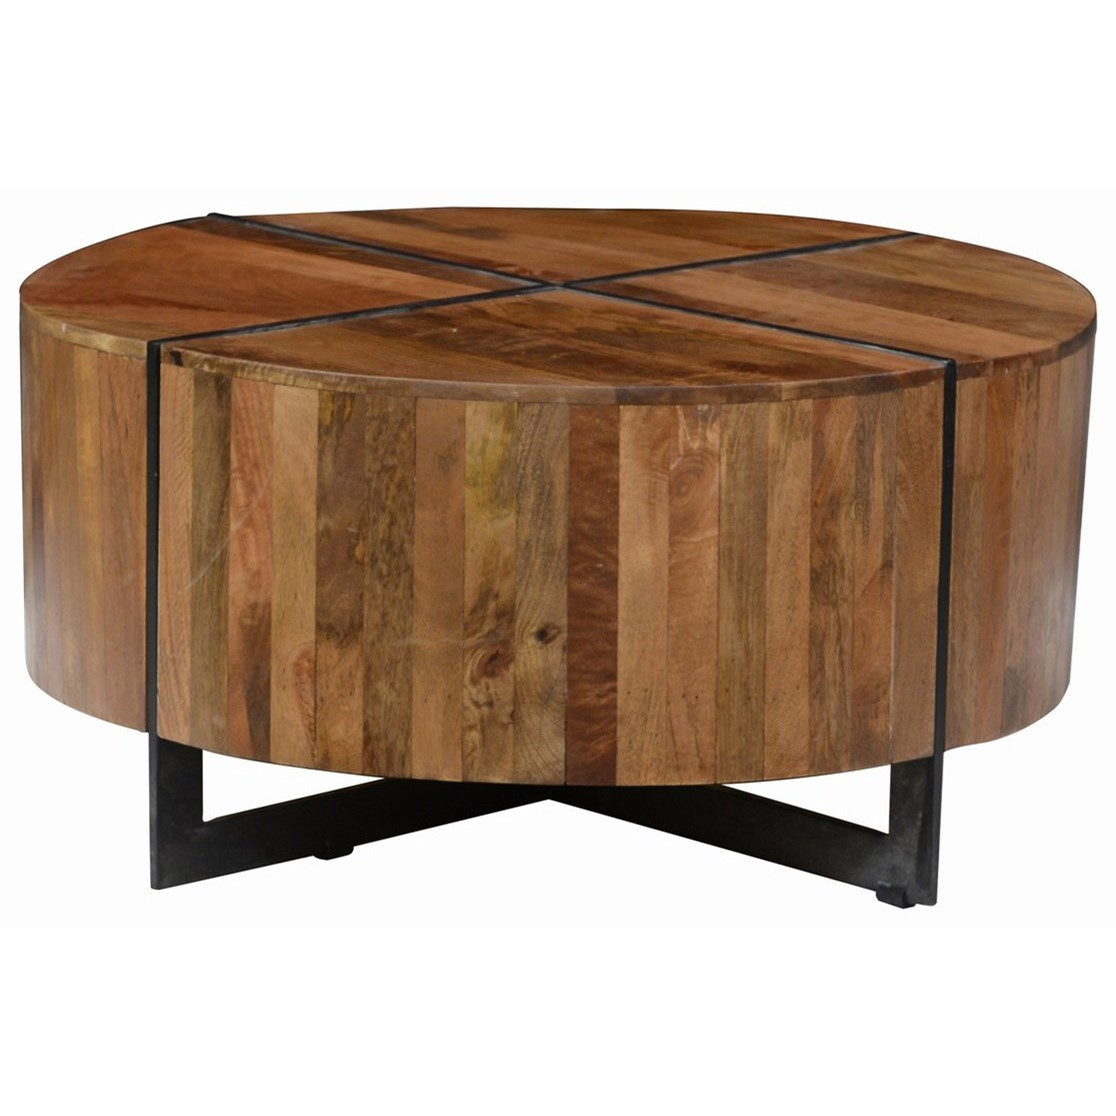 Classic Home Desmond Round Mango Wood Coffee Table With